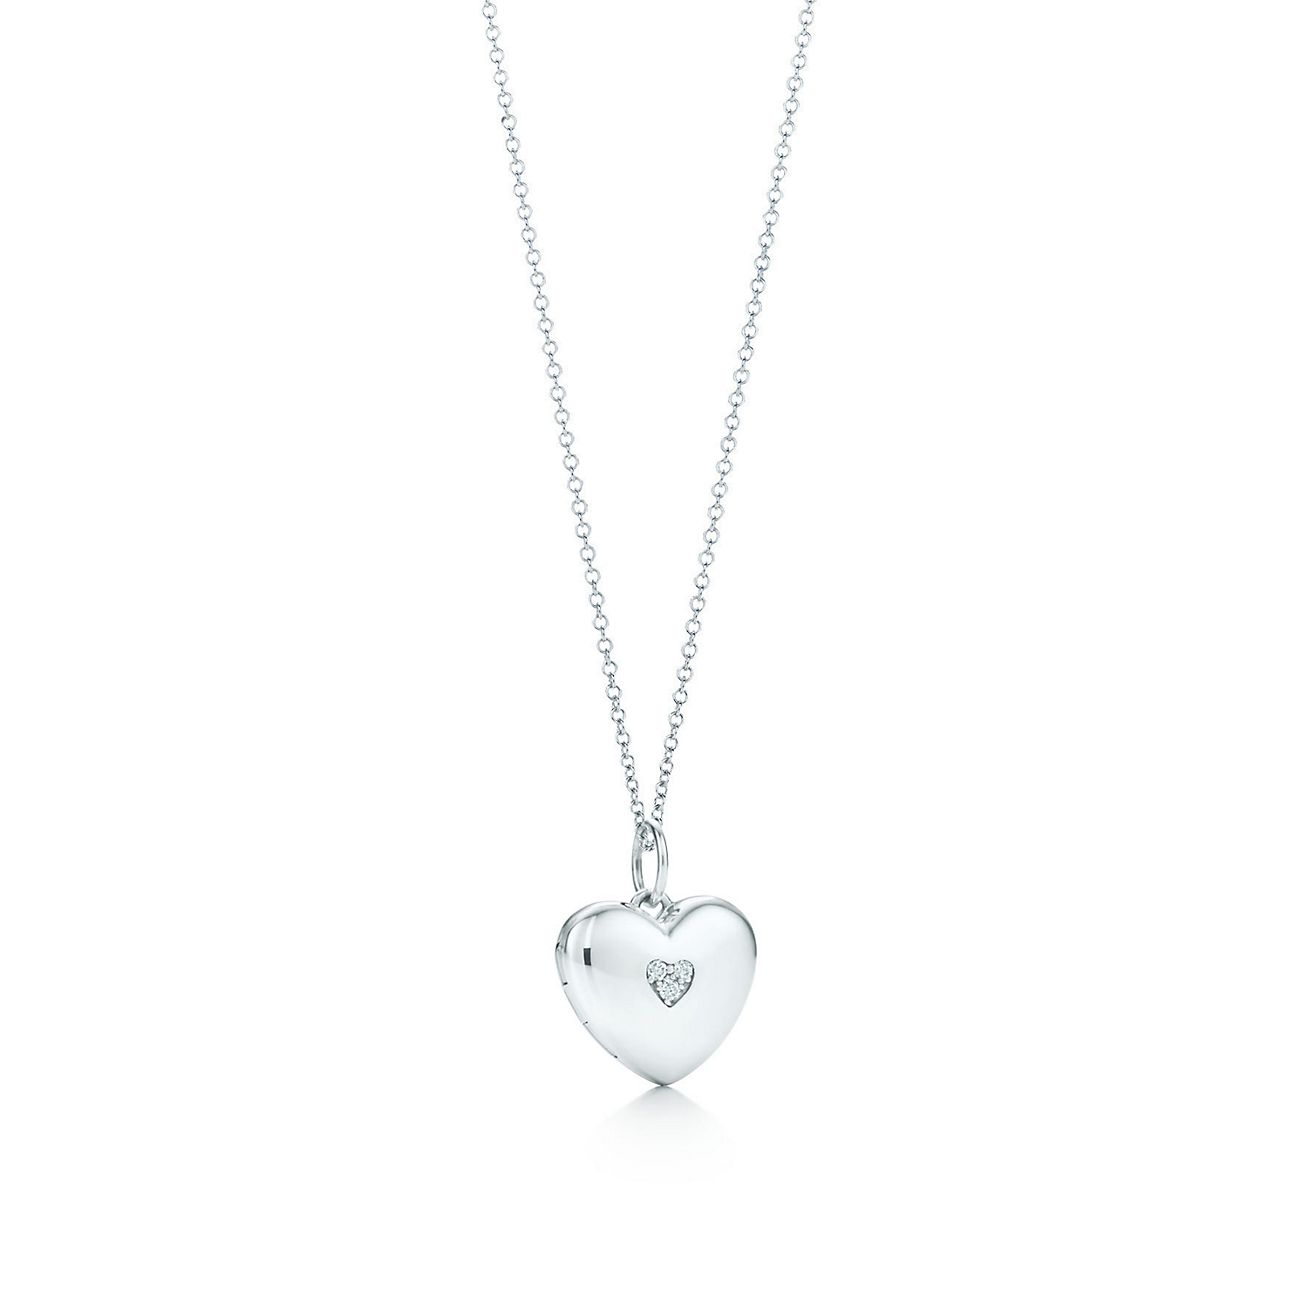 Heart locket in sterling silver with diamonds on a chain tiffany heart locket in sterling silver with diamonds on a chain tiffany co mozeypictures Image collections